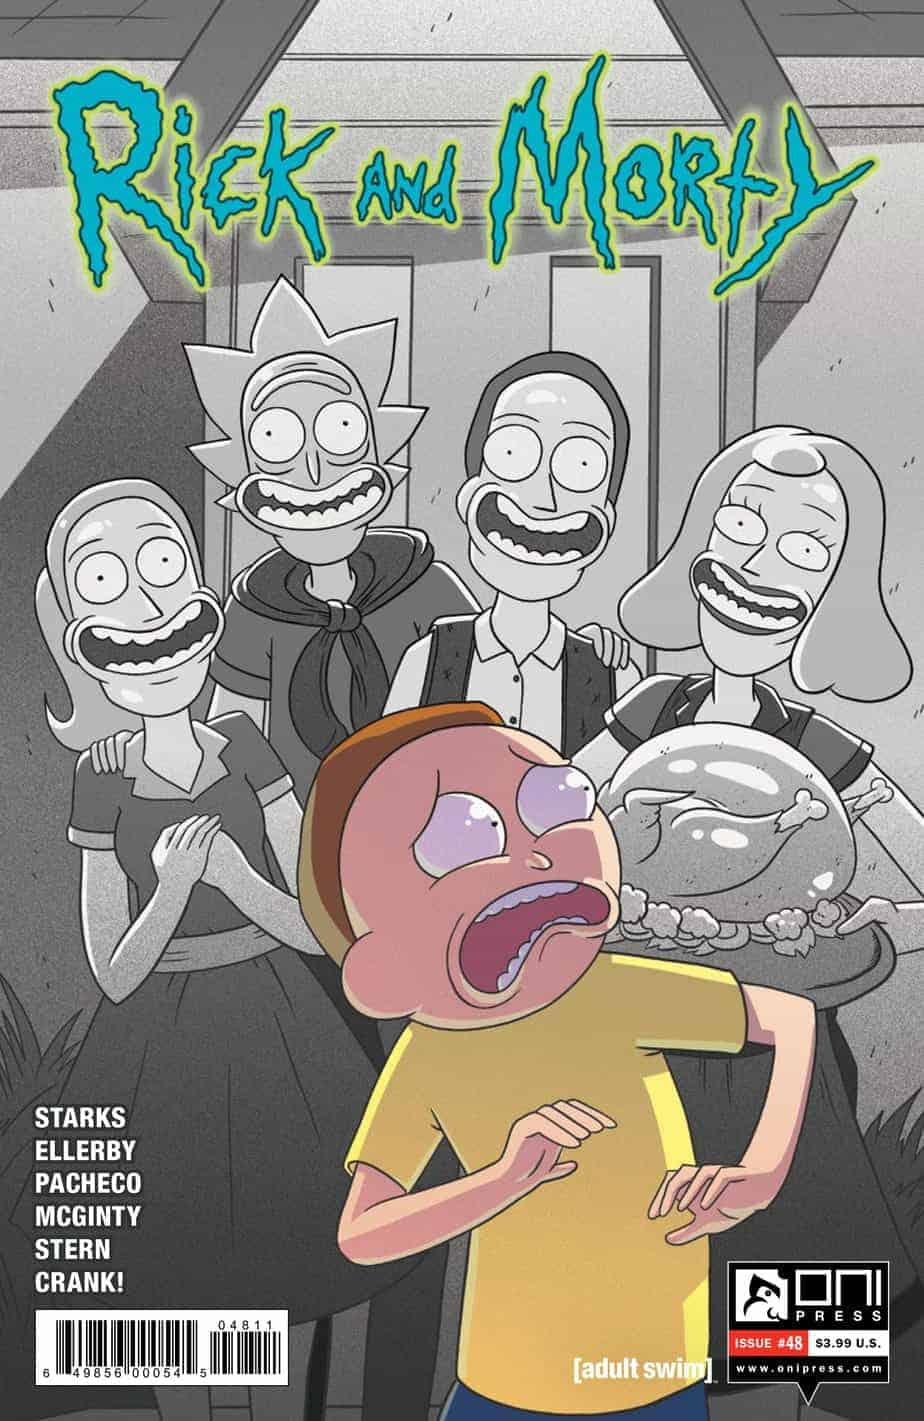 Rick and Morty™ #48 - Cover A